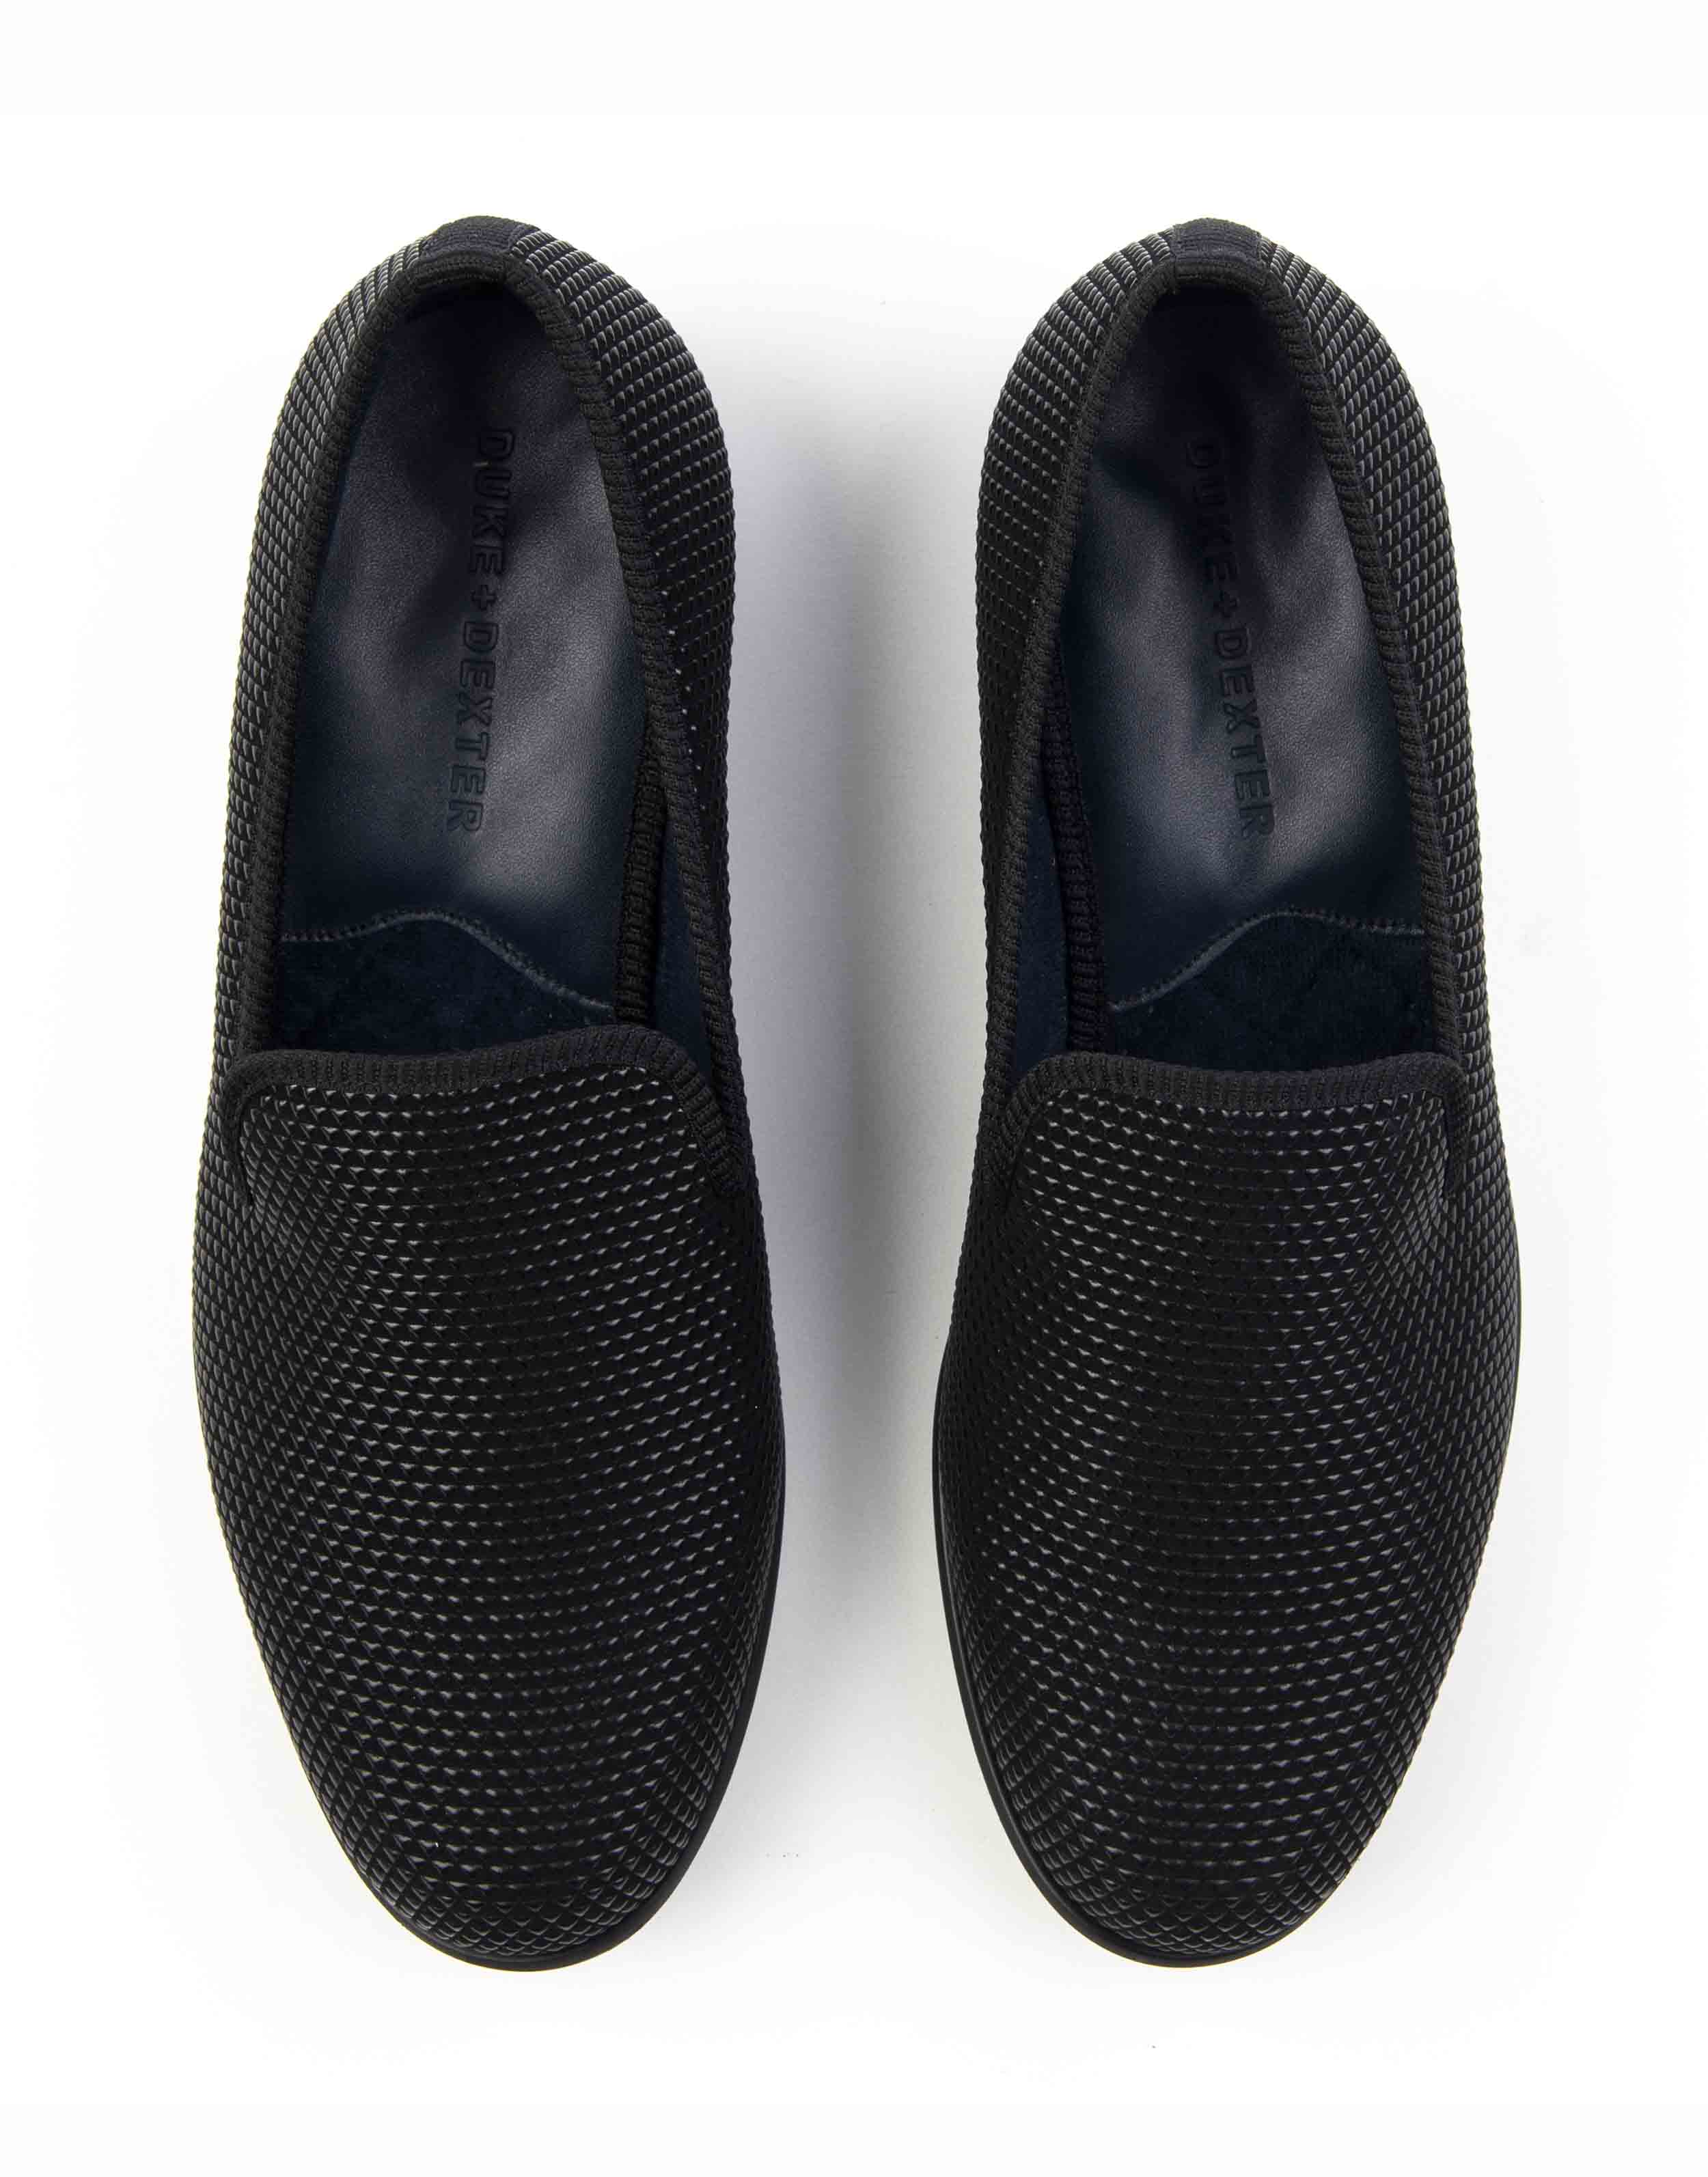 BLACK PYRAMID LOAFERS4